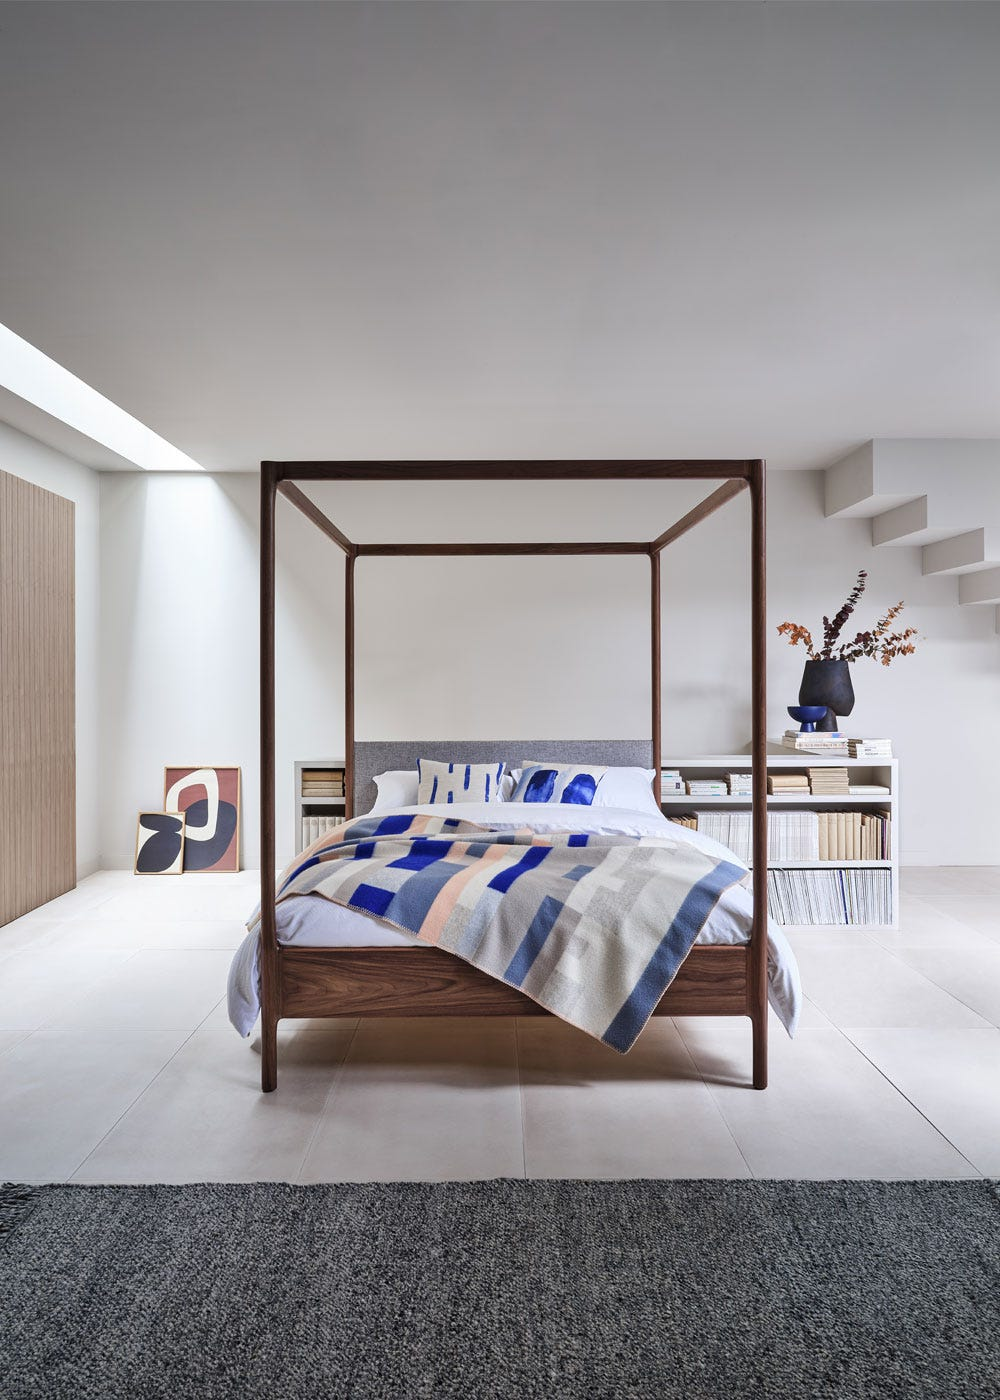 As shown: Marlow 4 poster bed - Front profile.